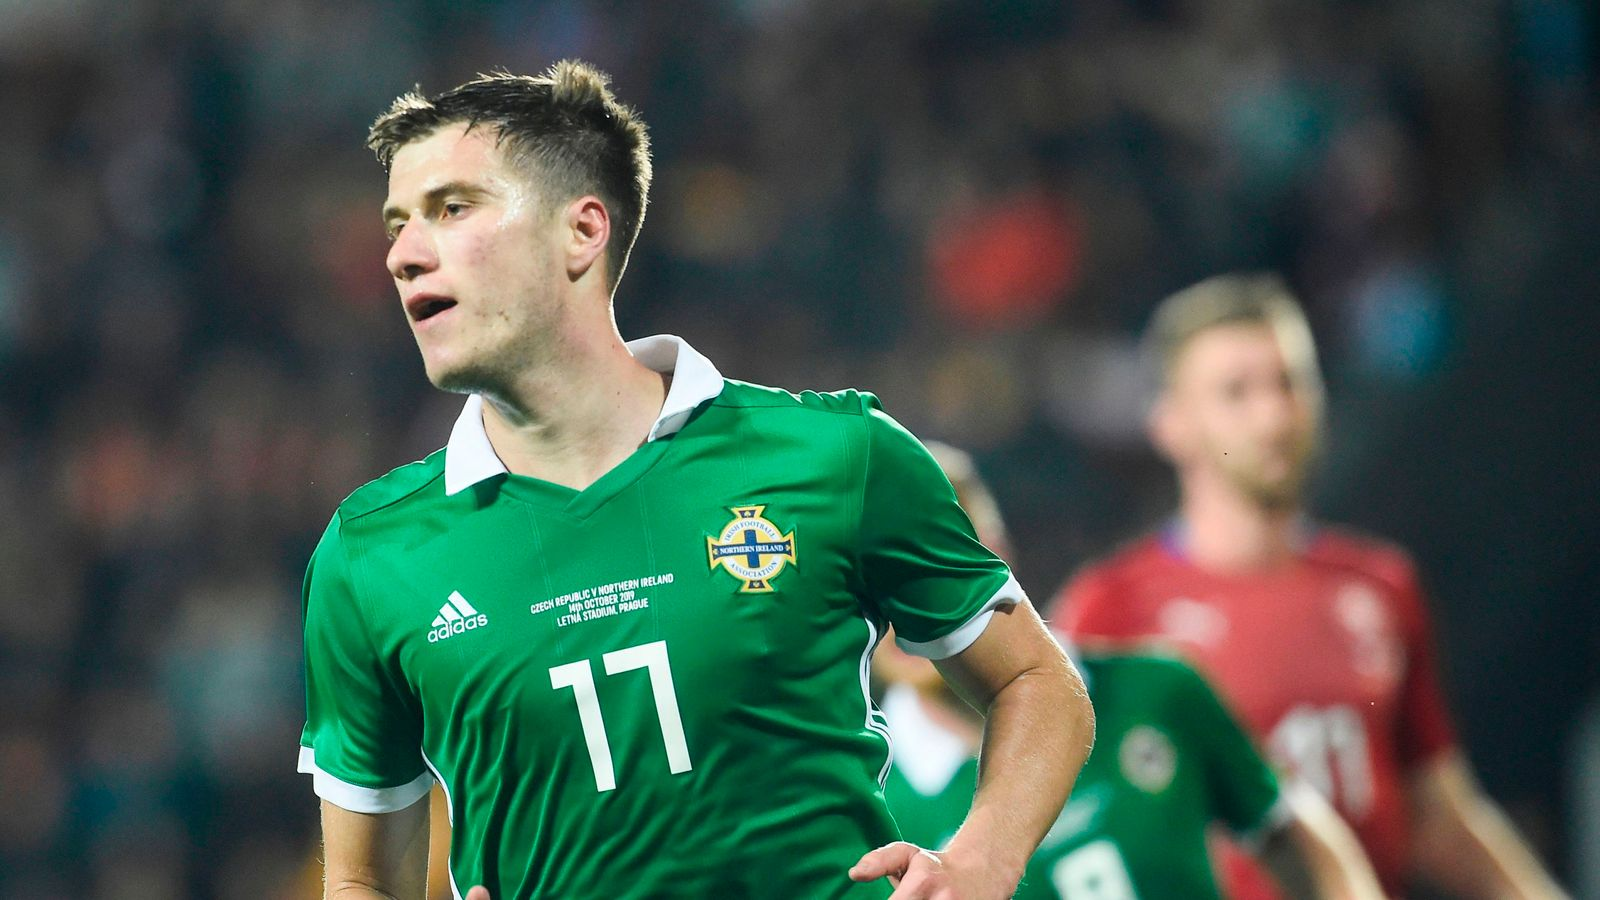 Czech Republic 2-3 Northern Ireland: Paddy McNair scores twice as visitors survive fightback